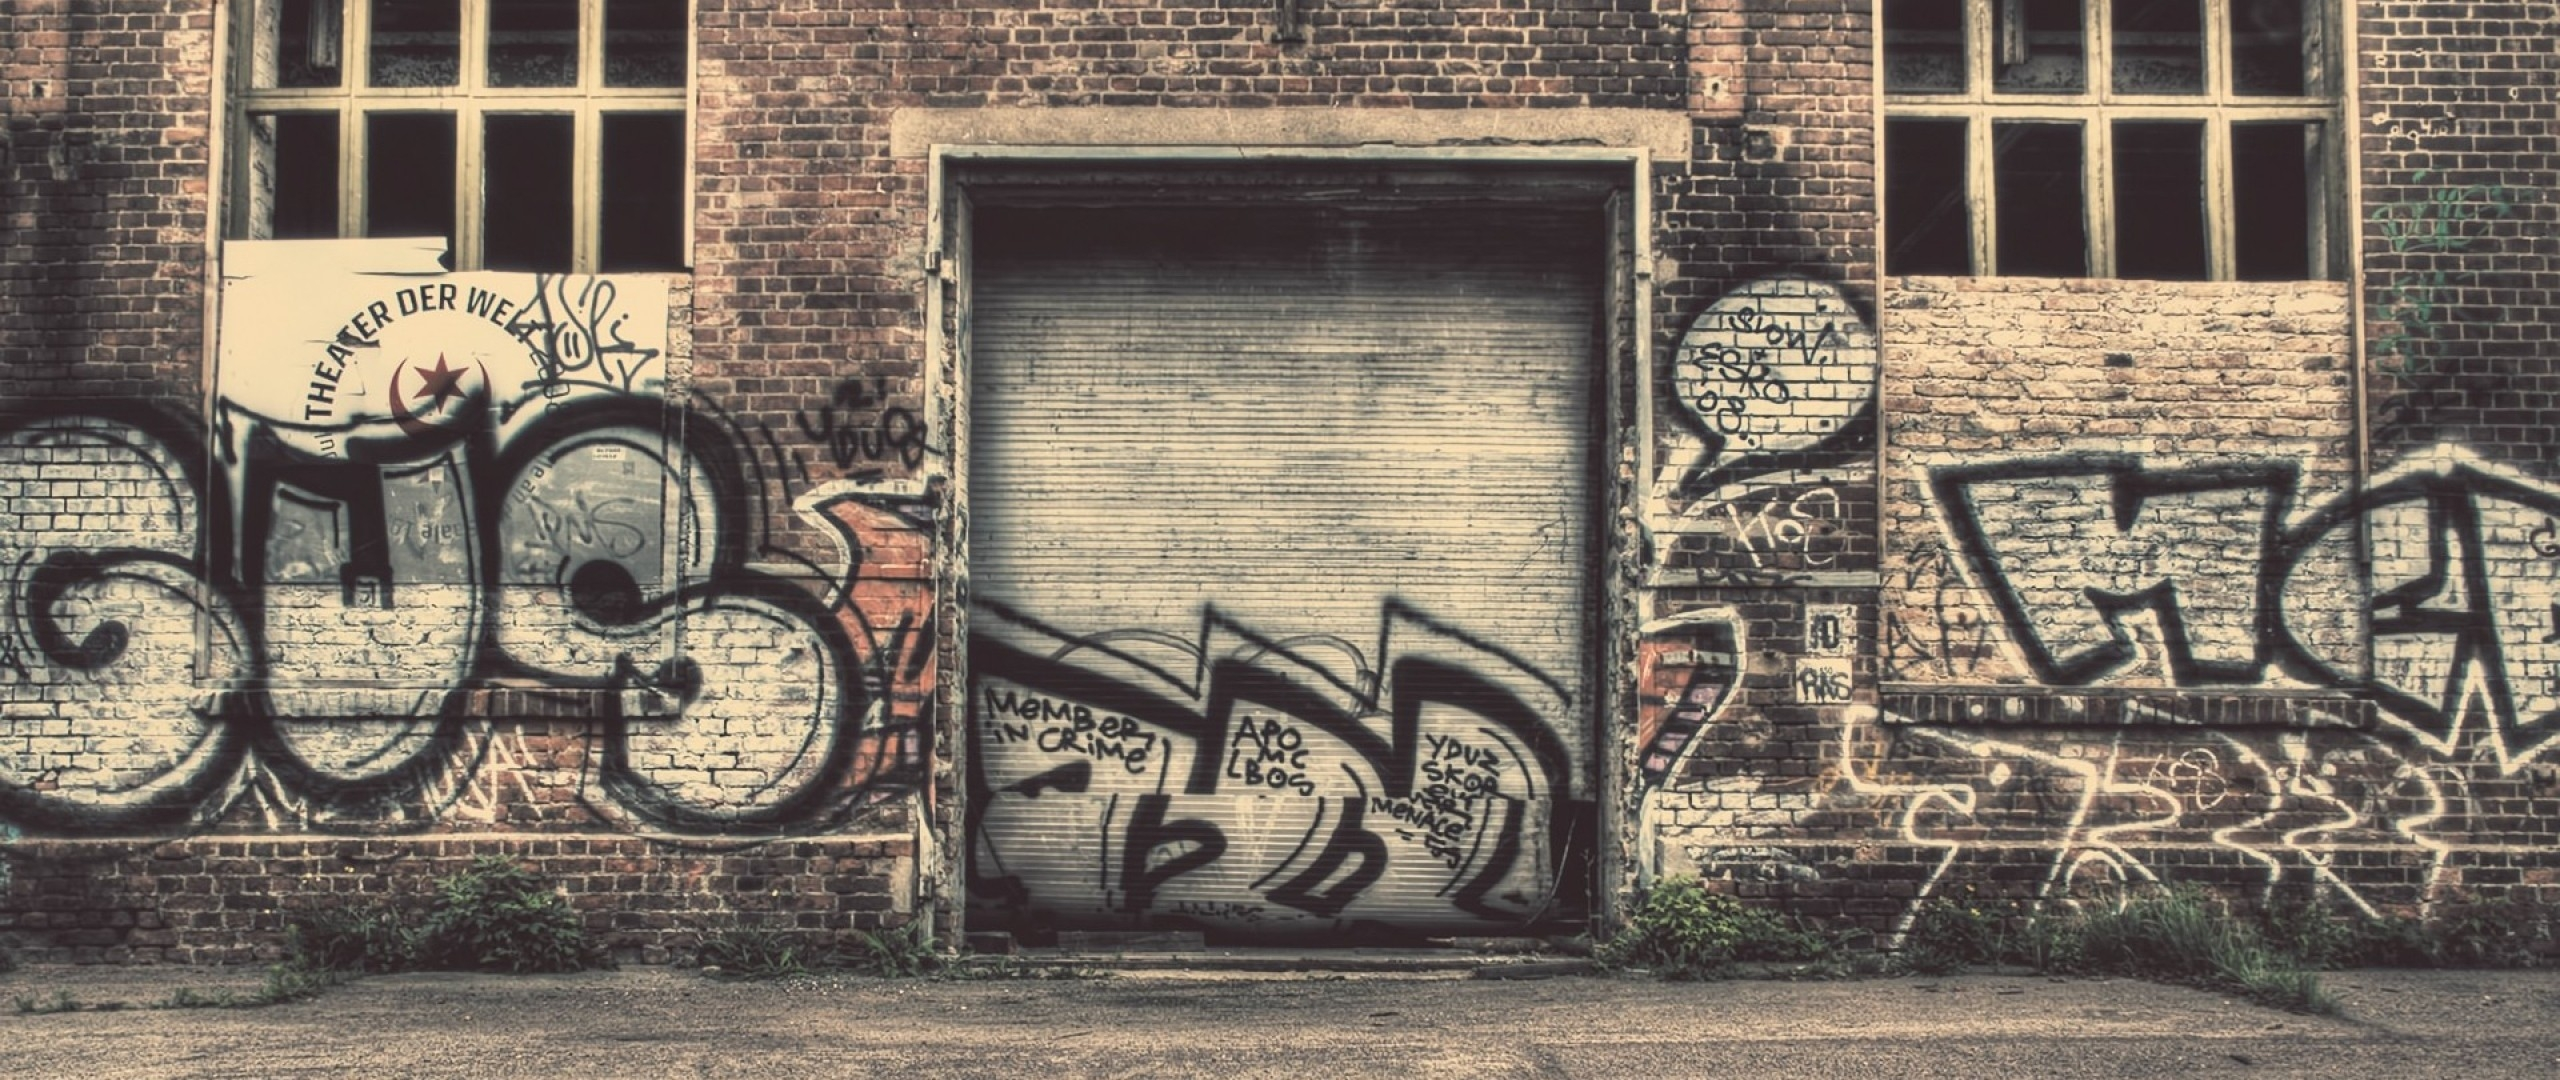 Hd Background City Graffiti Wall Drawing Art Old Street Wallpaper intended for Street Wall Painting Wallpapers 29949